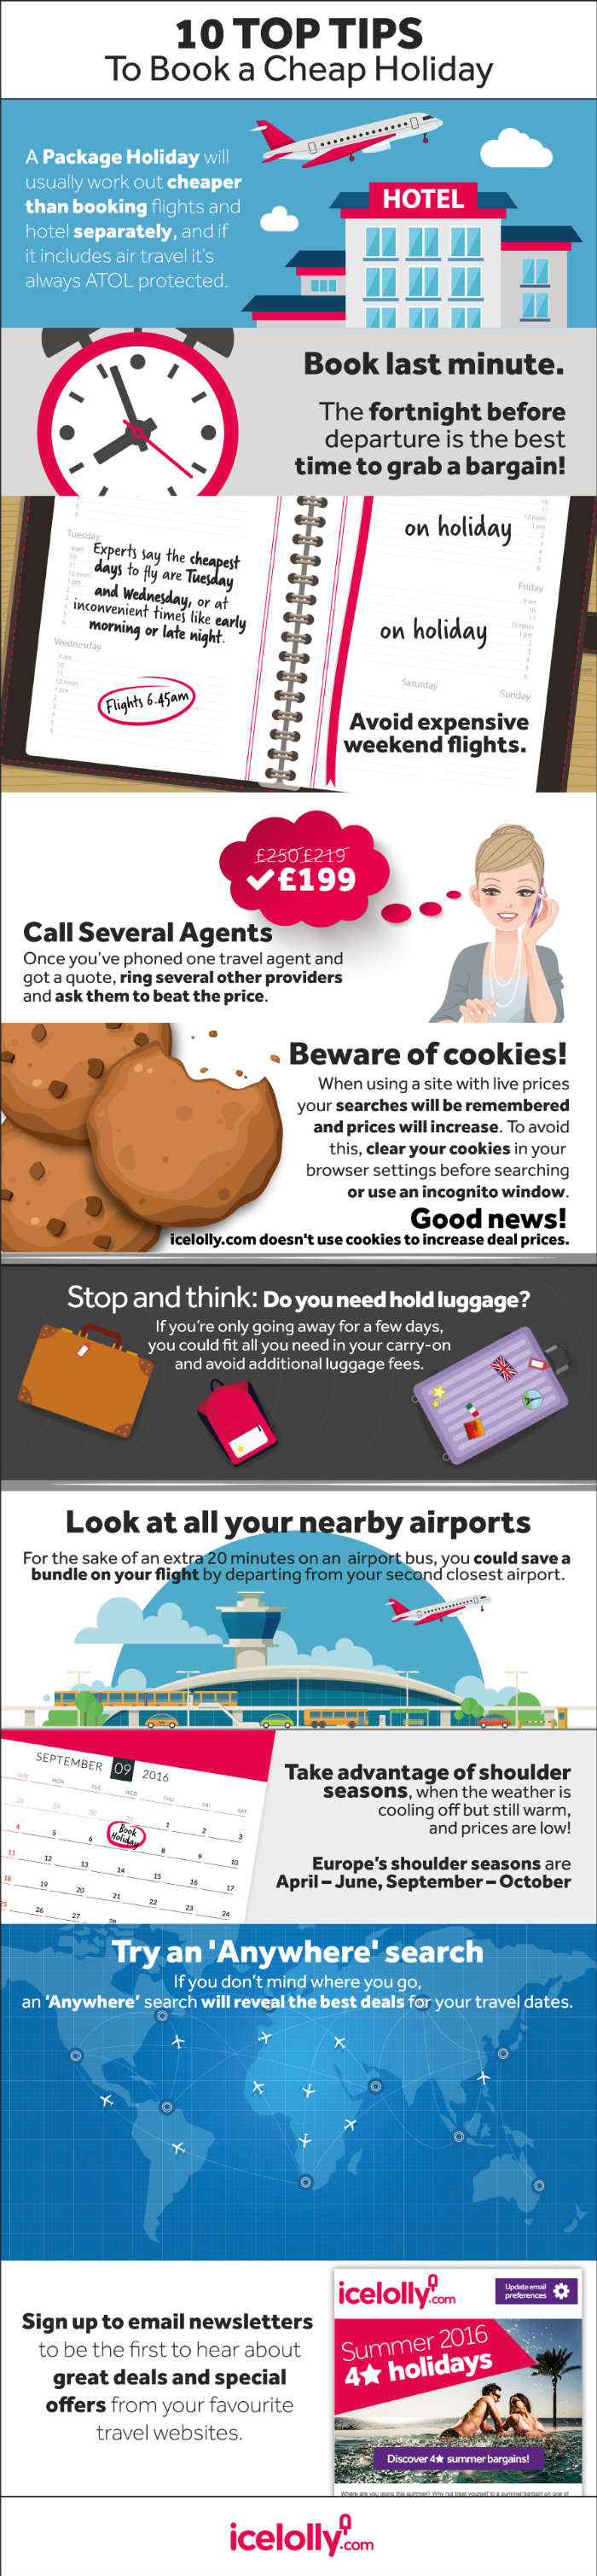 infographic on top ways to find and book a cheap holiday